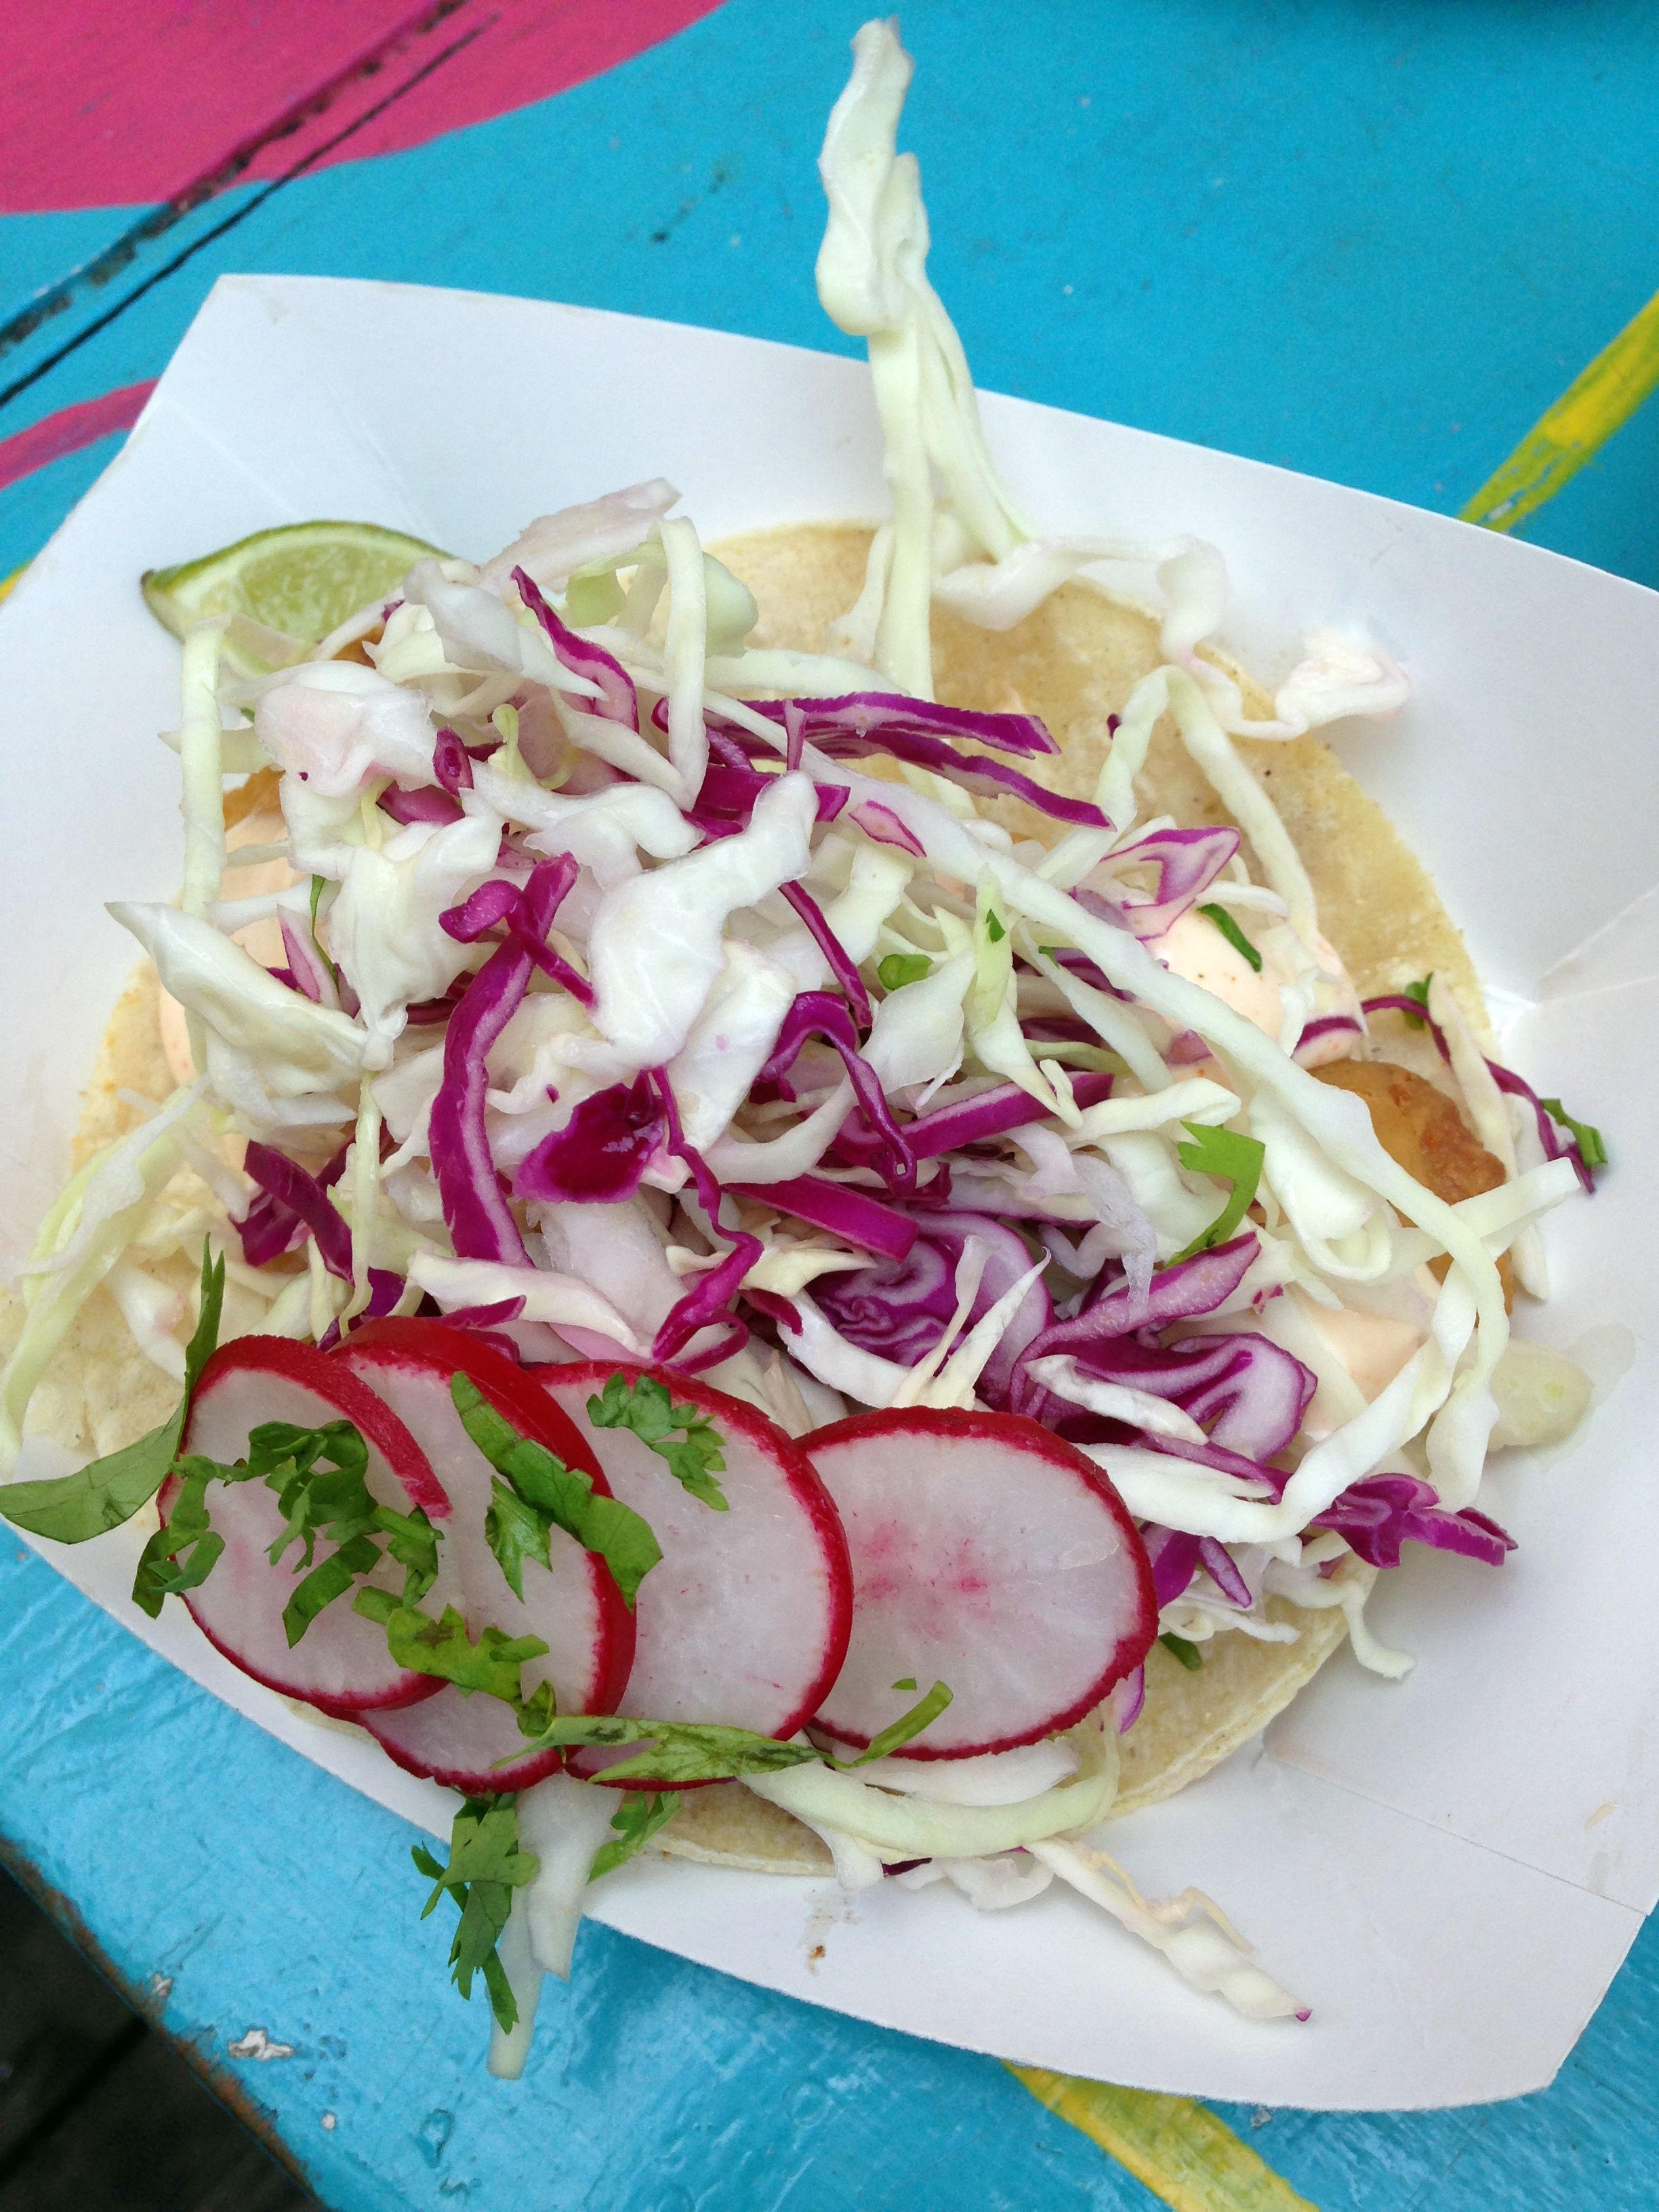 Plan a visit to rockaway beach in new york city for Best fish tacos nyc